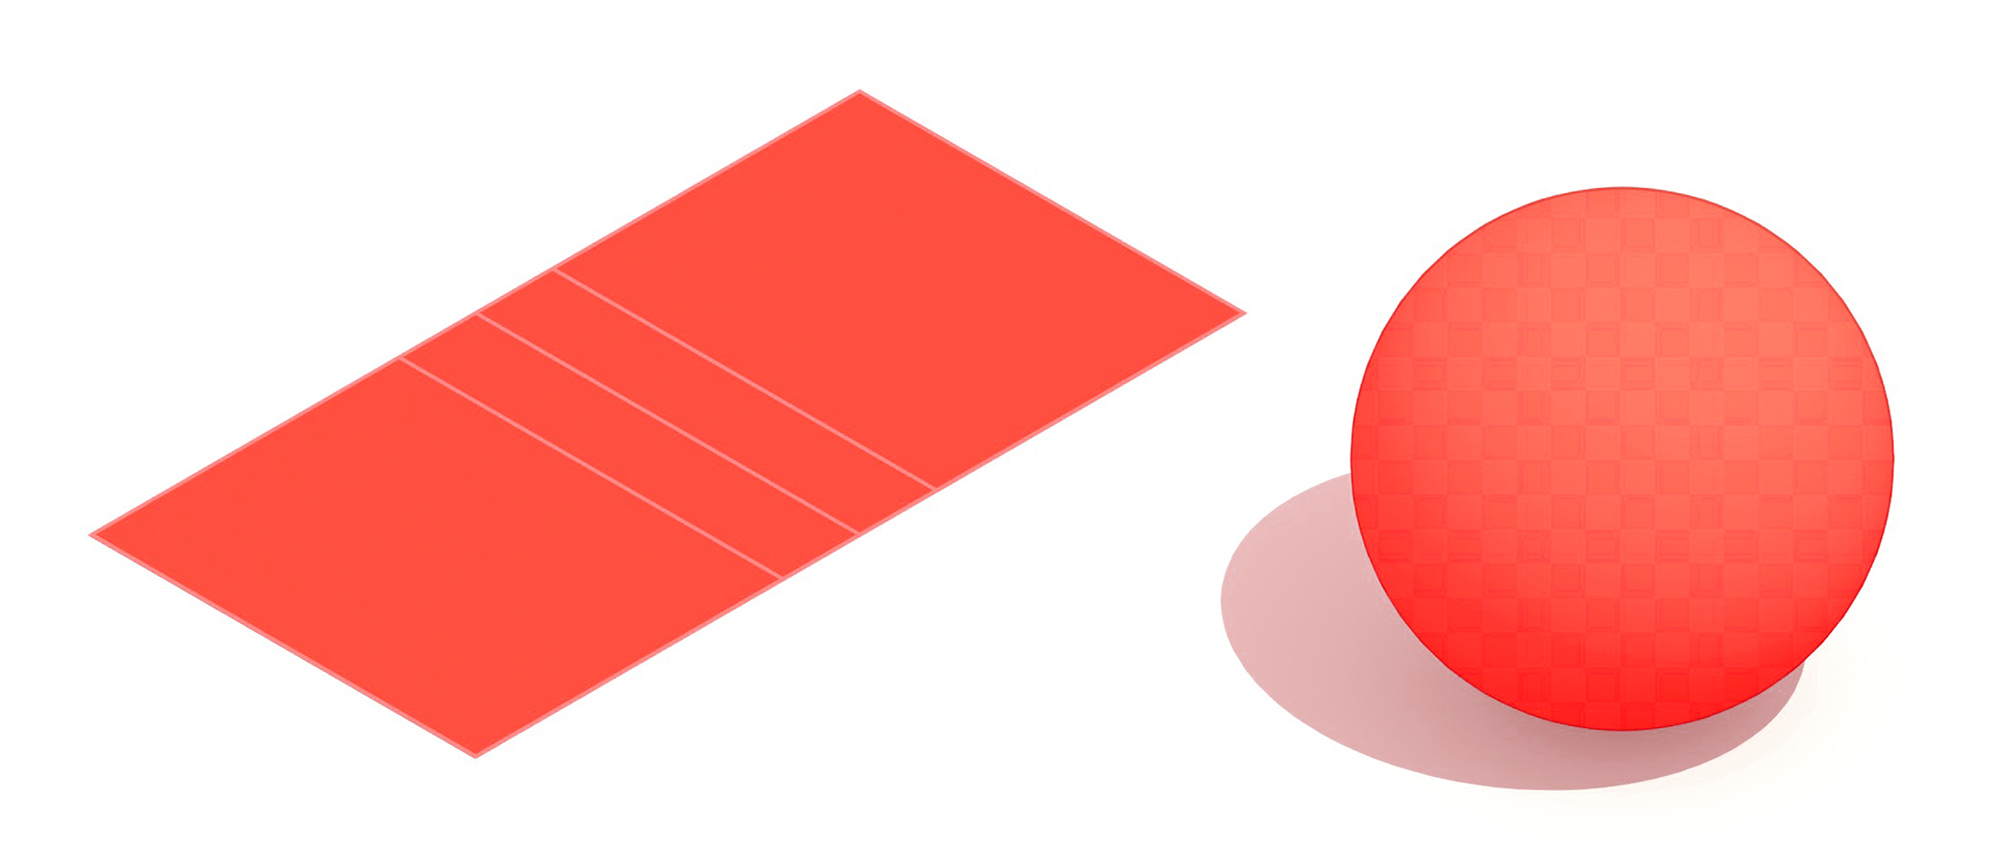 Pair of 3D illustrations showing a regulation dodgeball court and dodgeball